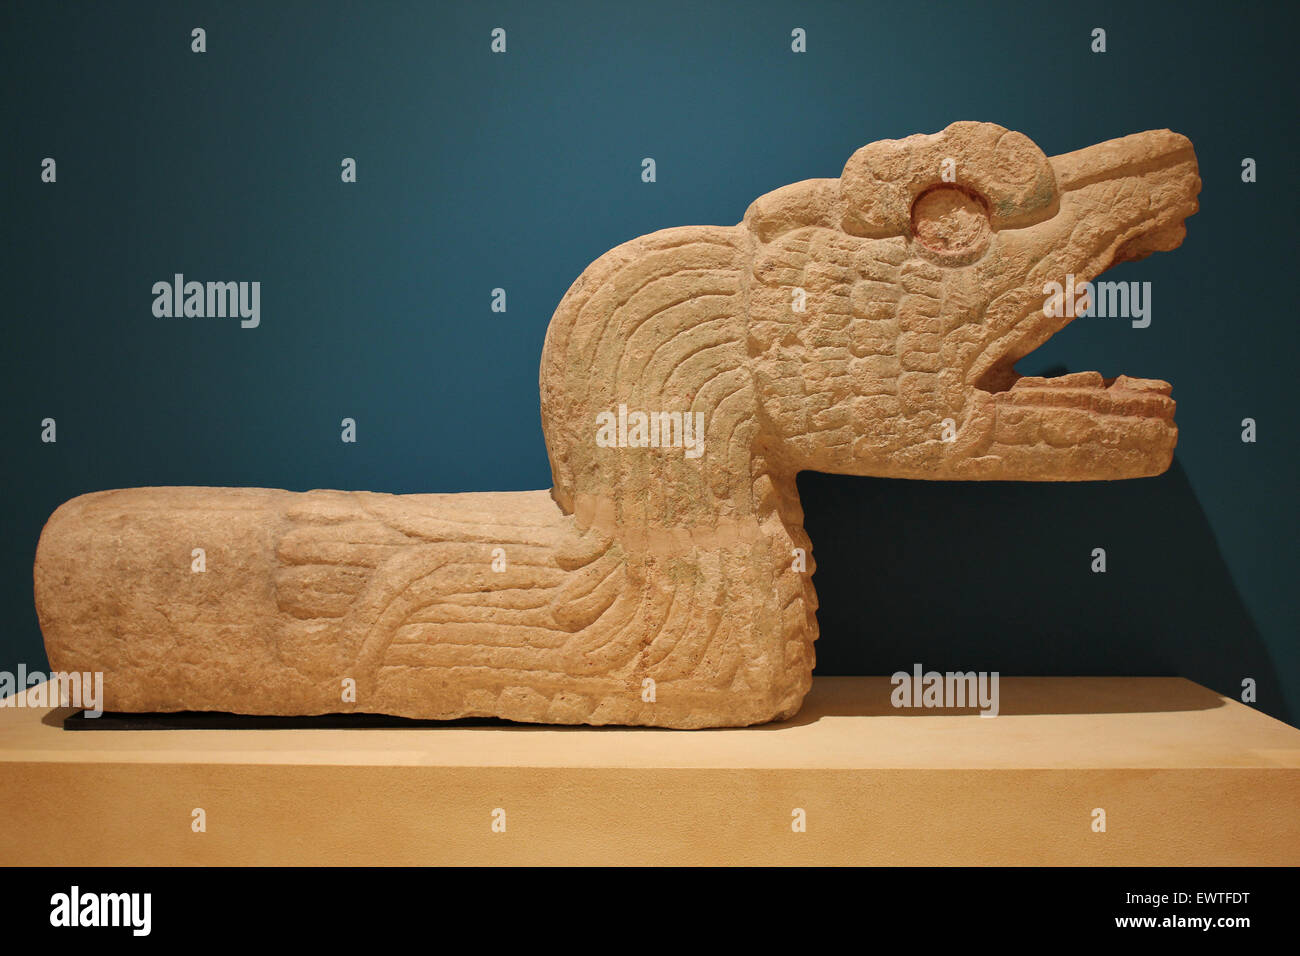 Feathered Snake, Chichén Itzá, Yucatán, Mexico Early post-Classic Period (AD 900-1250) - Stock Image